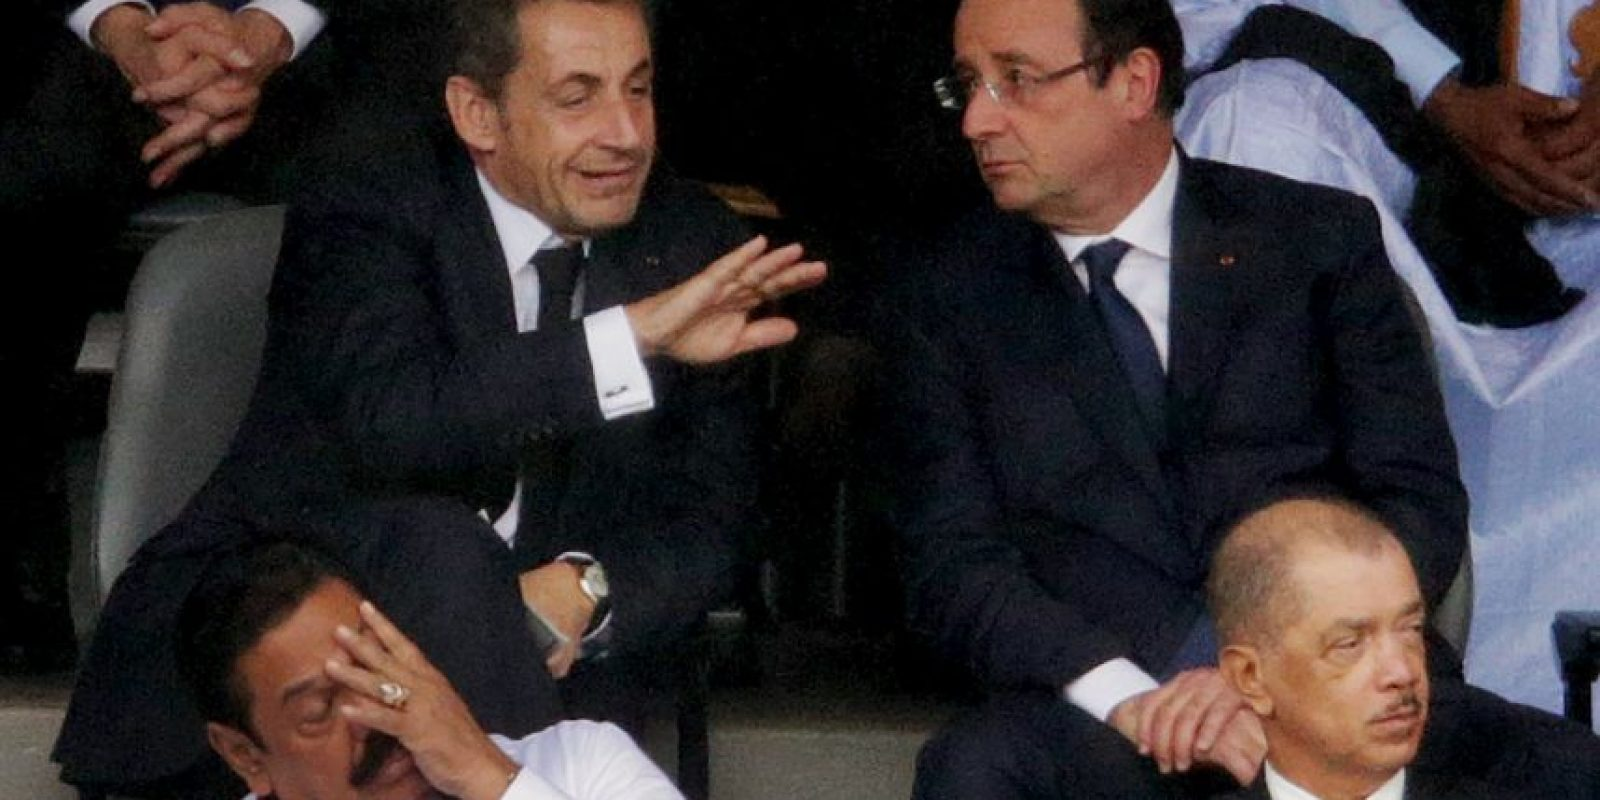 Nicolas Sarkozy Foto: Getty Images